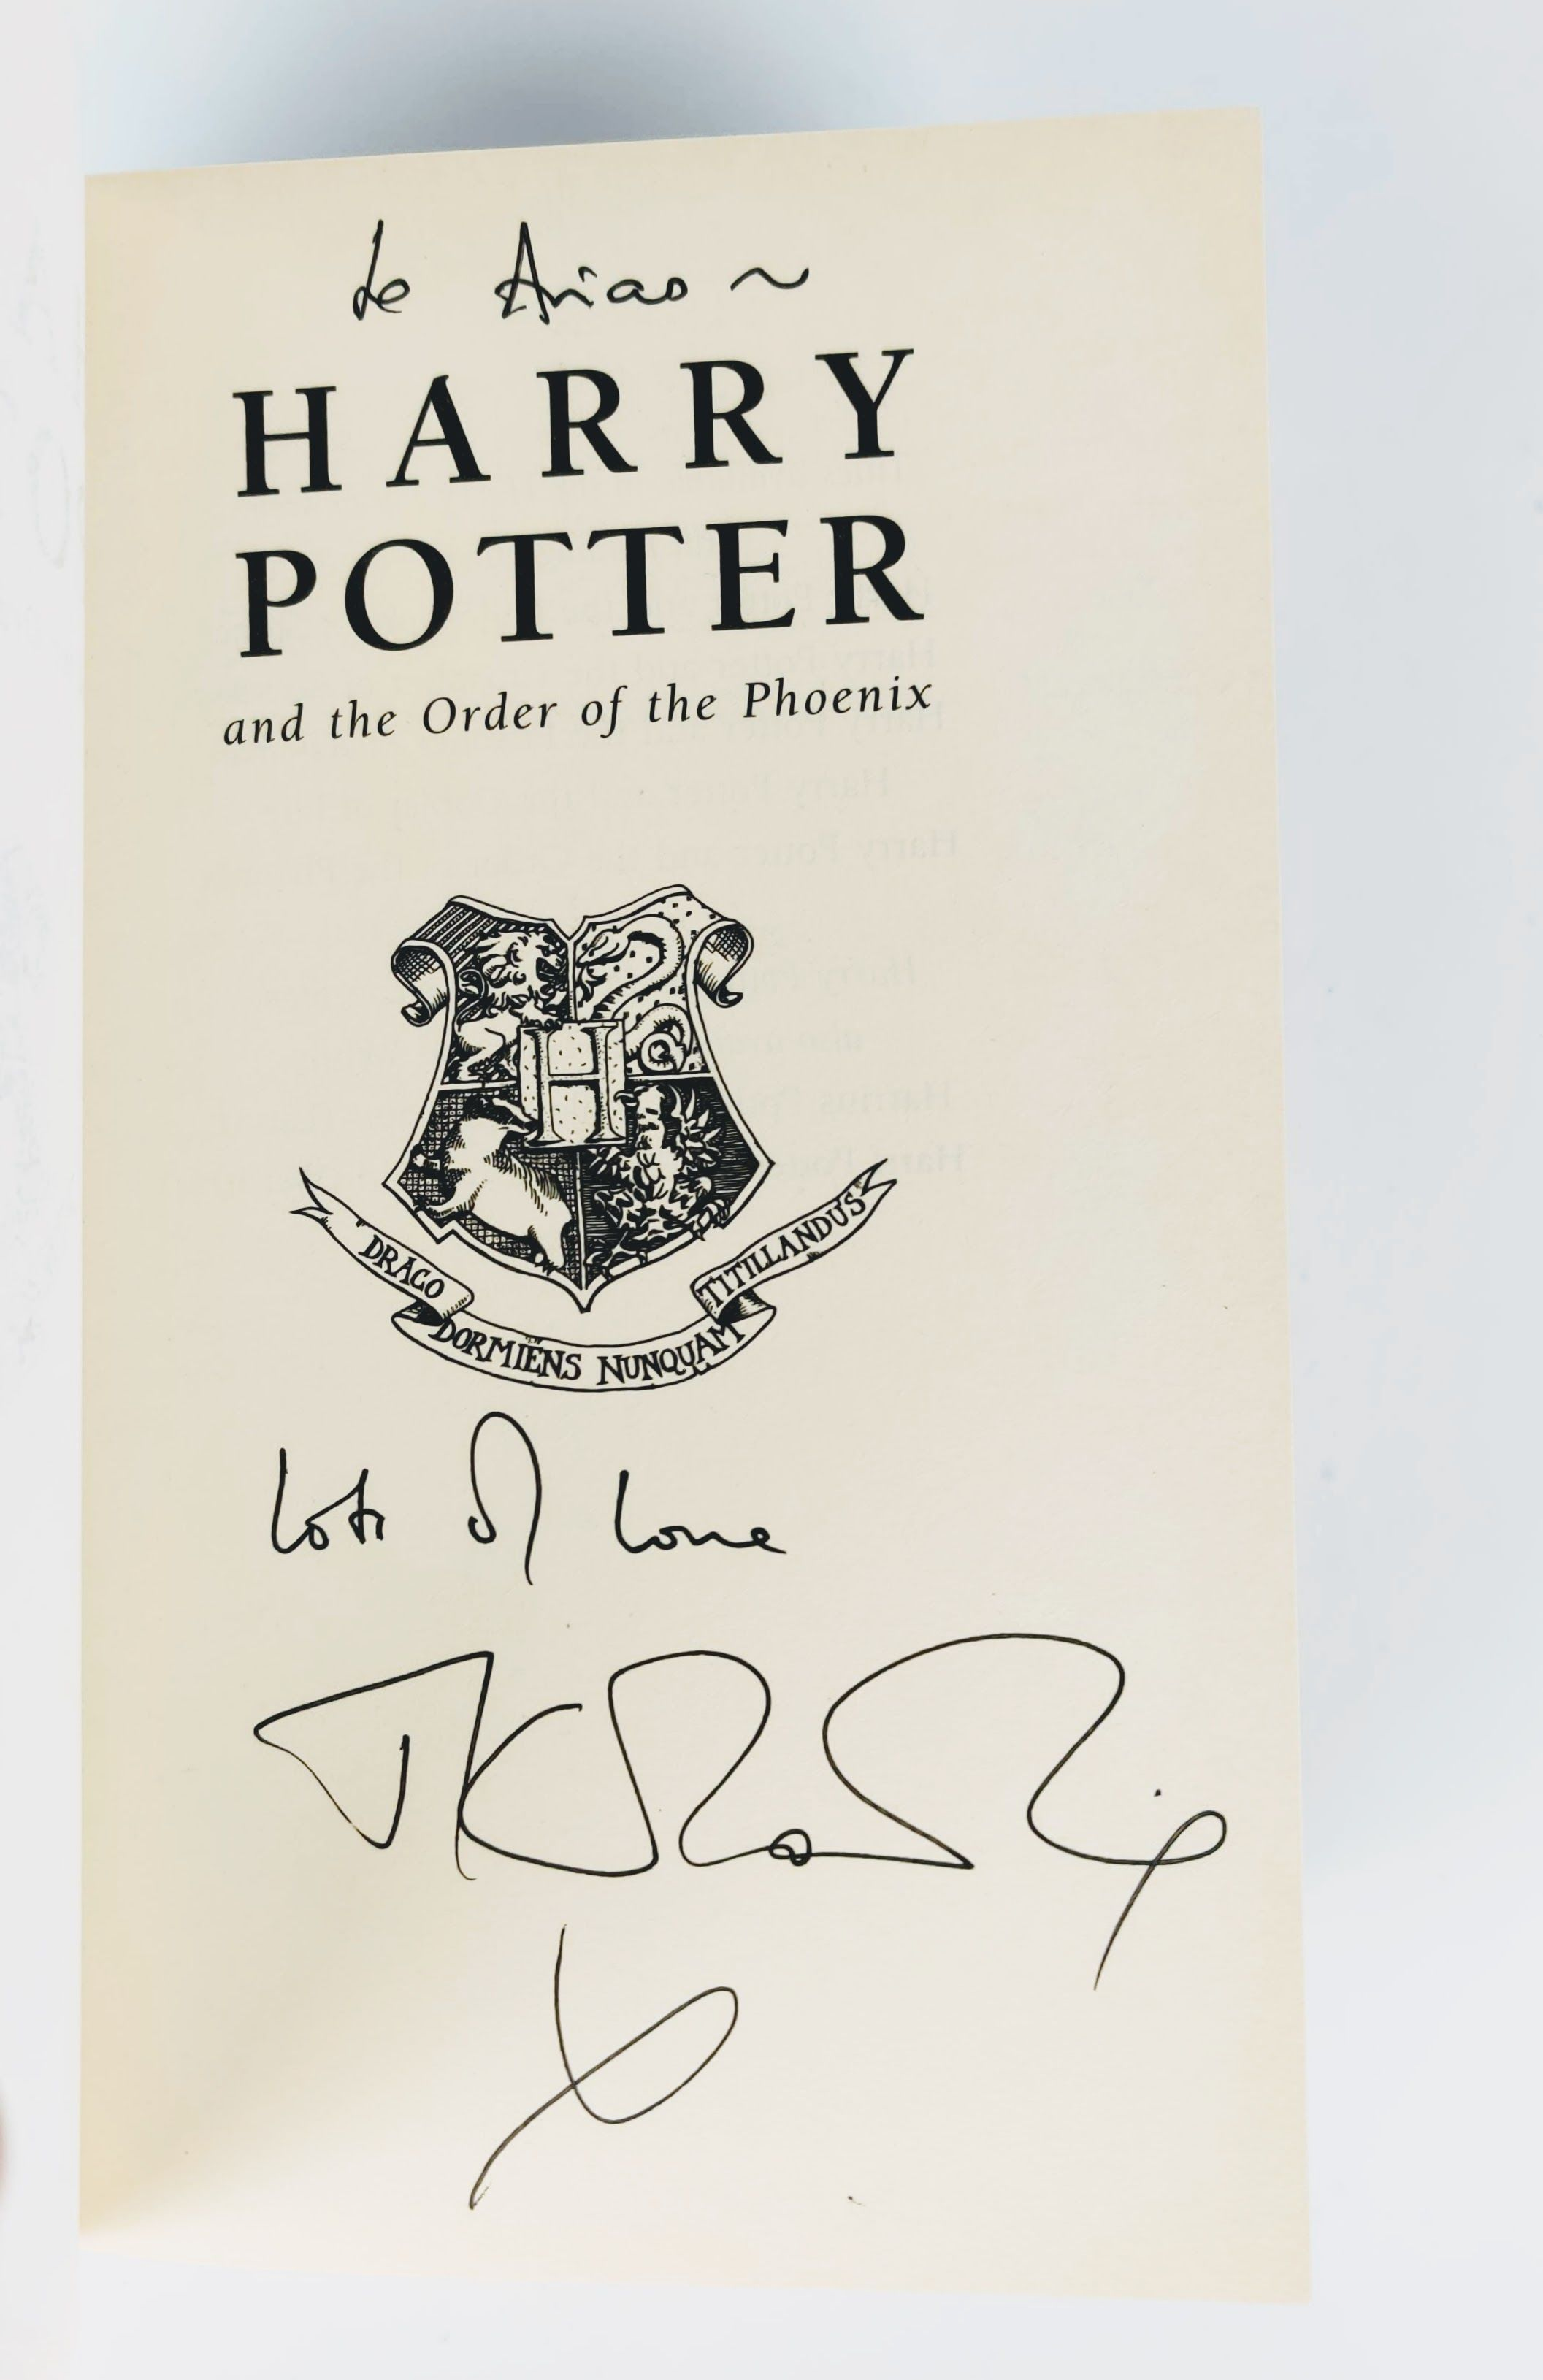 Harry Potter and the Order of the Phoenix (photo 6)